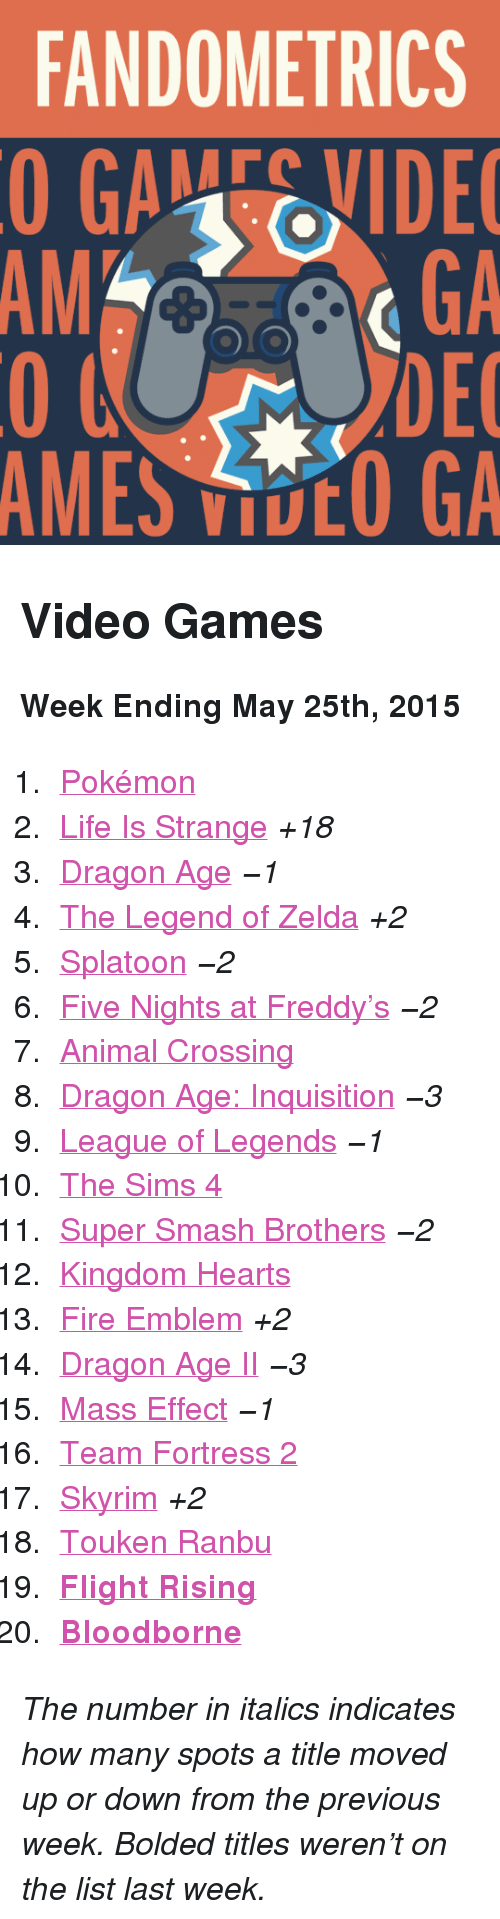 """Fire, League of Legends, and Life: FANDOMETRICS  GAEVIDE  GA  DEC  AMES VOO GA  AM <h2>Video Games</h2><p><b>Week Ending May 25th, 2015</b></p><ol><li><a href=""""http://www.tumblr.com/search/pokemon"""">Pokémon</a></li>  <li><a href=""""http://www.tumblr.com/search/life%20is%20strange"""">Life Is Strange</a><i>+18</i></li>  <li><a href=""""http://www.tumblr.com/search/dragon%20age"""">Dragon Age</a><i>−1</i></li>  <li><a href=""""http://www.tumblr.com/search/legend%20of%20zelda"""">The Legend of Zelda</a><i>+2</i></li>  <li><a href=""""http://www.tumblr.com/search/splatoon"""">Splatoon</a><i>−2</i></li>  <li><a href=""""http://www.tumblr.com/search/five%20nights%20at%20freddy's"""">Five Nights at Freddy&rsquo;s</a><i>−2</i></li>  <li><a href=""""http://www.tumblr.com/search/acnl"""">Animal Crossing</a></li>  <li><a href=""""http://www.tumblr.com/search/dragon%20age%20inquisition"""">Dragon Age: Inquisition</a><i>−3</i></li>  <li><a href=""""http://www.tumblr.com/search/league%20of%20legends"""">League of Legends</a><i>−1</i></li>  <li><a href=""""http://www.tumblr.com/search/sims%204"""">The Sims 4</a></li>  <li><a href=""""http://www.tumblr.com/search/super%20smash%20bros"""">Super Smash Brothers</a><i>−2</i></li>  <li><a href=""""http://www.tumblr.com/search/kingdom%20hearts"""">Kingdom Hearts</a></li>  <li><a href=""""http://www.tumblr.com/search/fire%20emblem"""">Fire Emblem</a><i>+2</i></li>  <li><a href=""""http://www.tumblr.com/search/dragon%20age%202"""">Dragon Age II</a><i>−3</i></li>  <li><a href=""""http://www.tumblr.com/search/mass%20effect"""">Mass Effect</a><i>−1</i></li>  <li><a href=""""http://www.tumblr.com/search/tf2"""">Team Fortress 2</a></li>  <li><a href=""""http://www.tumblr.com/search/skyrim"""">Skyrim</a><i>+2</i></li>  <li><a href=""""http://www.tumblr.com/search/touken%20ranbu"""">Touken Ranbu</a></li>  <li><a href=""""http://www.tumblr.com/search/flight%20rising""""><b>Flight Rising</b></a></li>  <li><a href=""""http://www.tumblr.com/search/bloodborne""""><b>Bloodborne</b></a></li></ol><p><i>The number in italics indicates how many spots a title moved up """